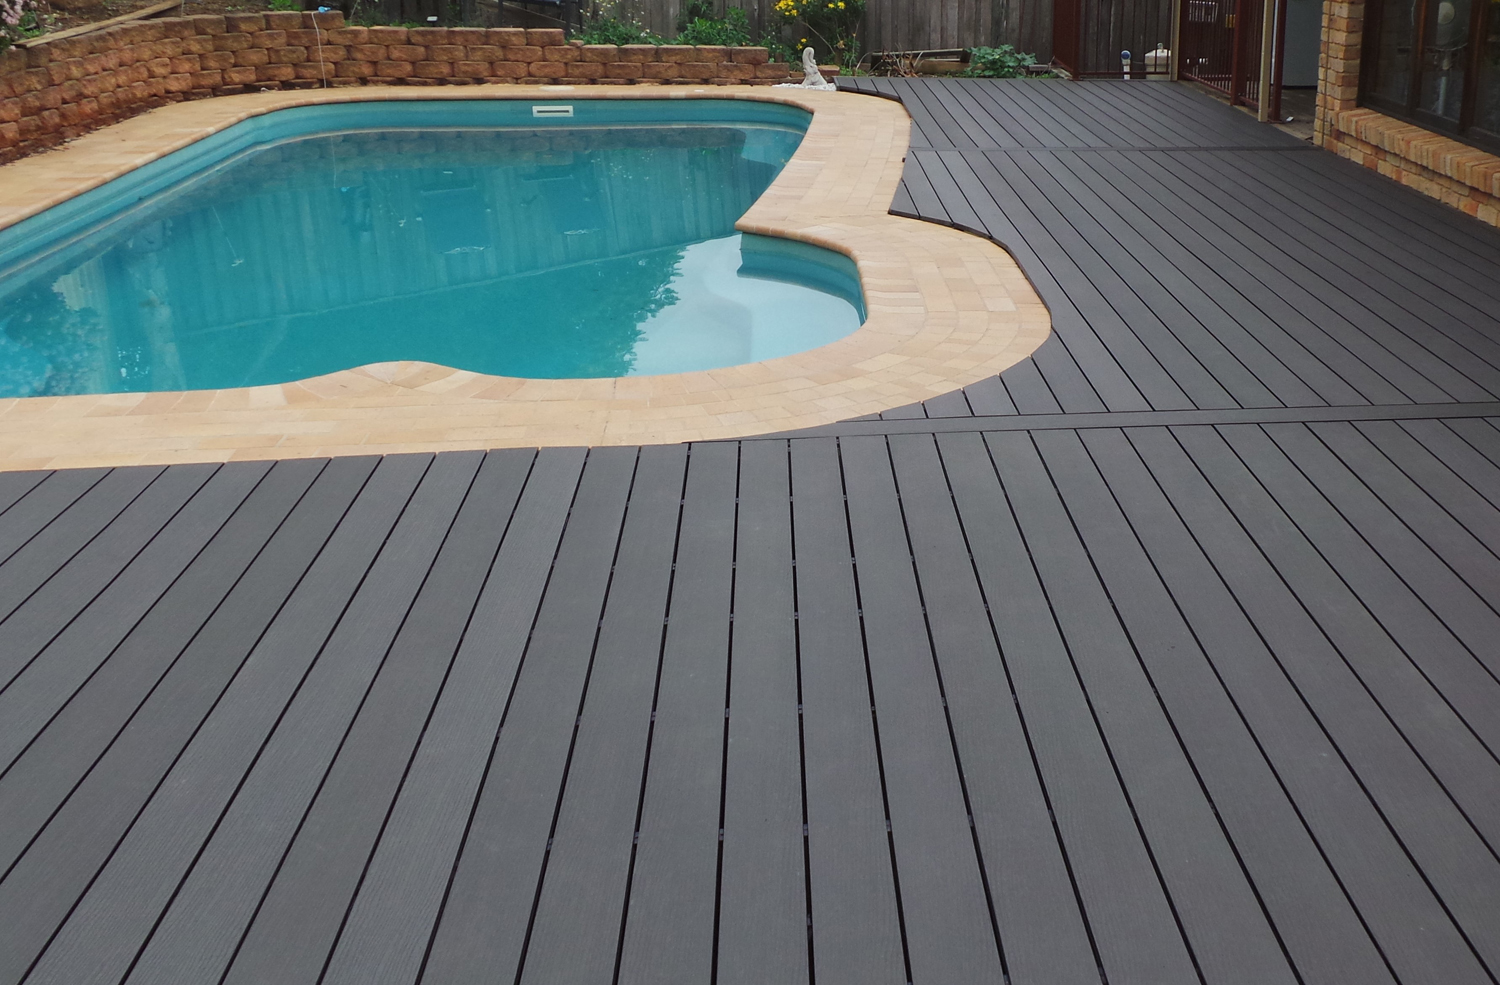 Future proof your outdoor area with CleverDeck Original from Futurewood